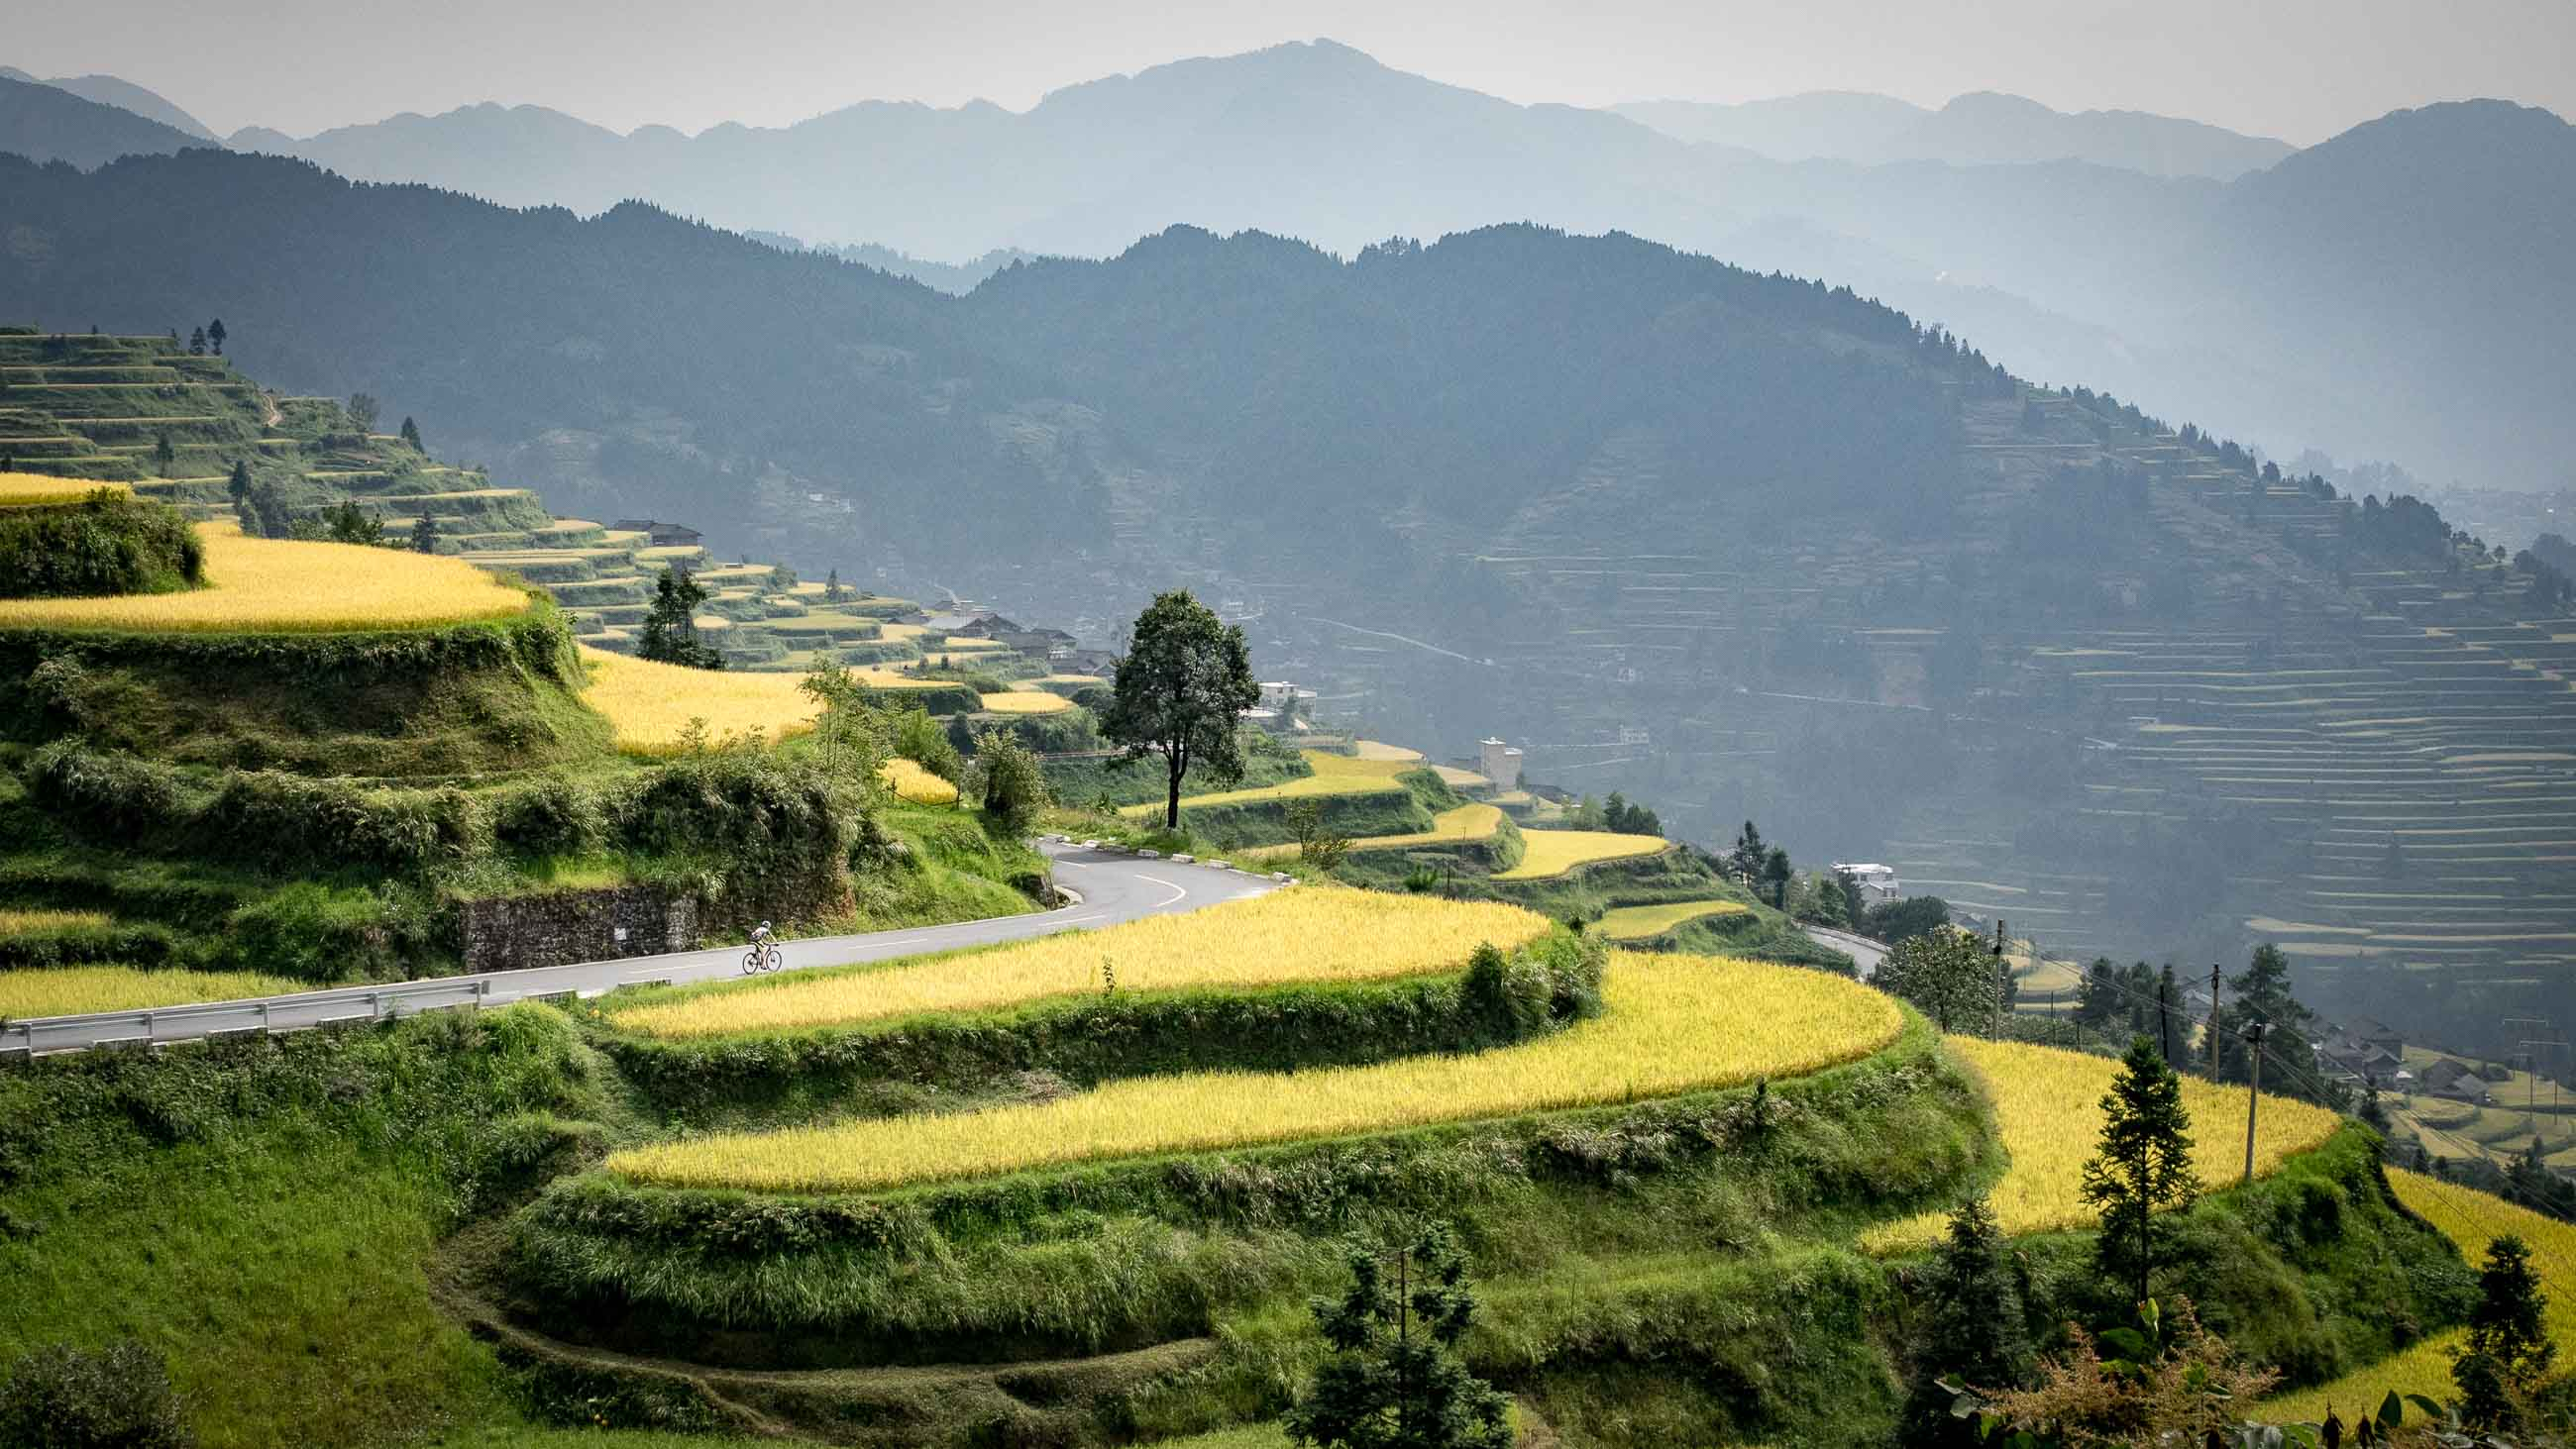 Cycling tour holiday in China - South